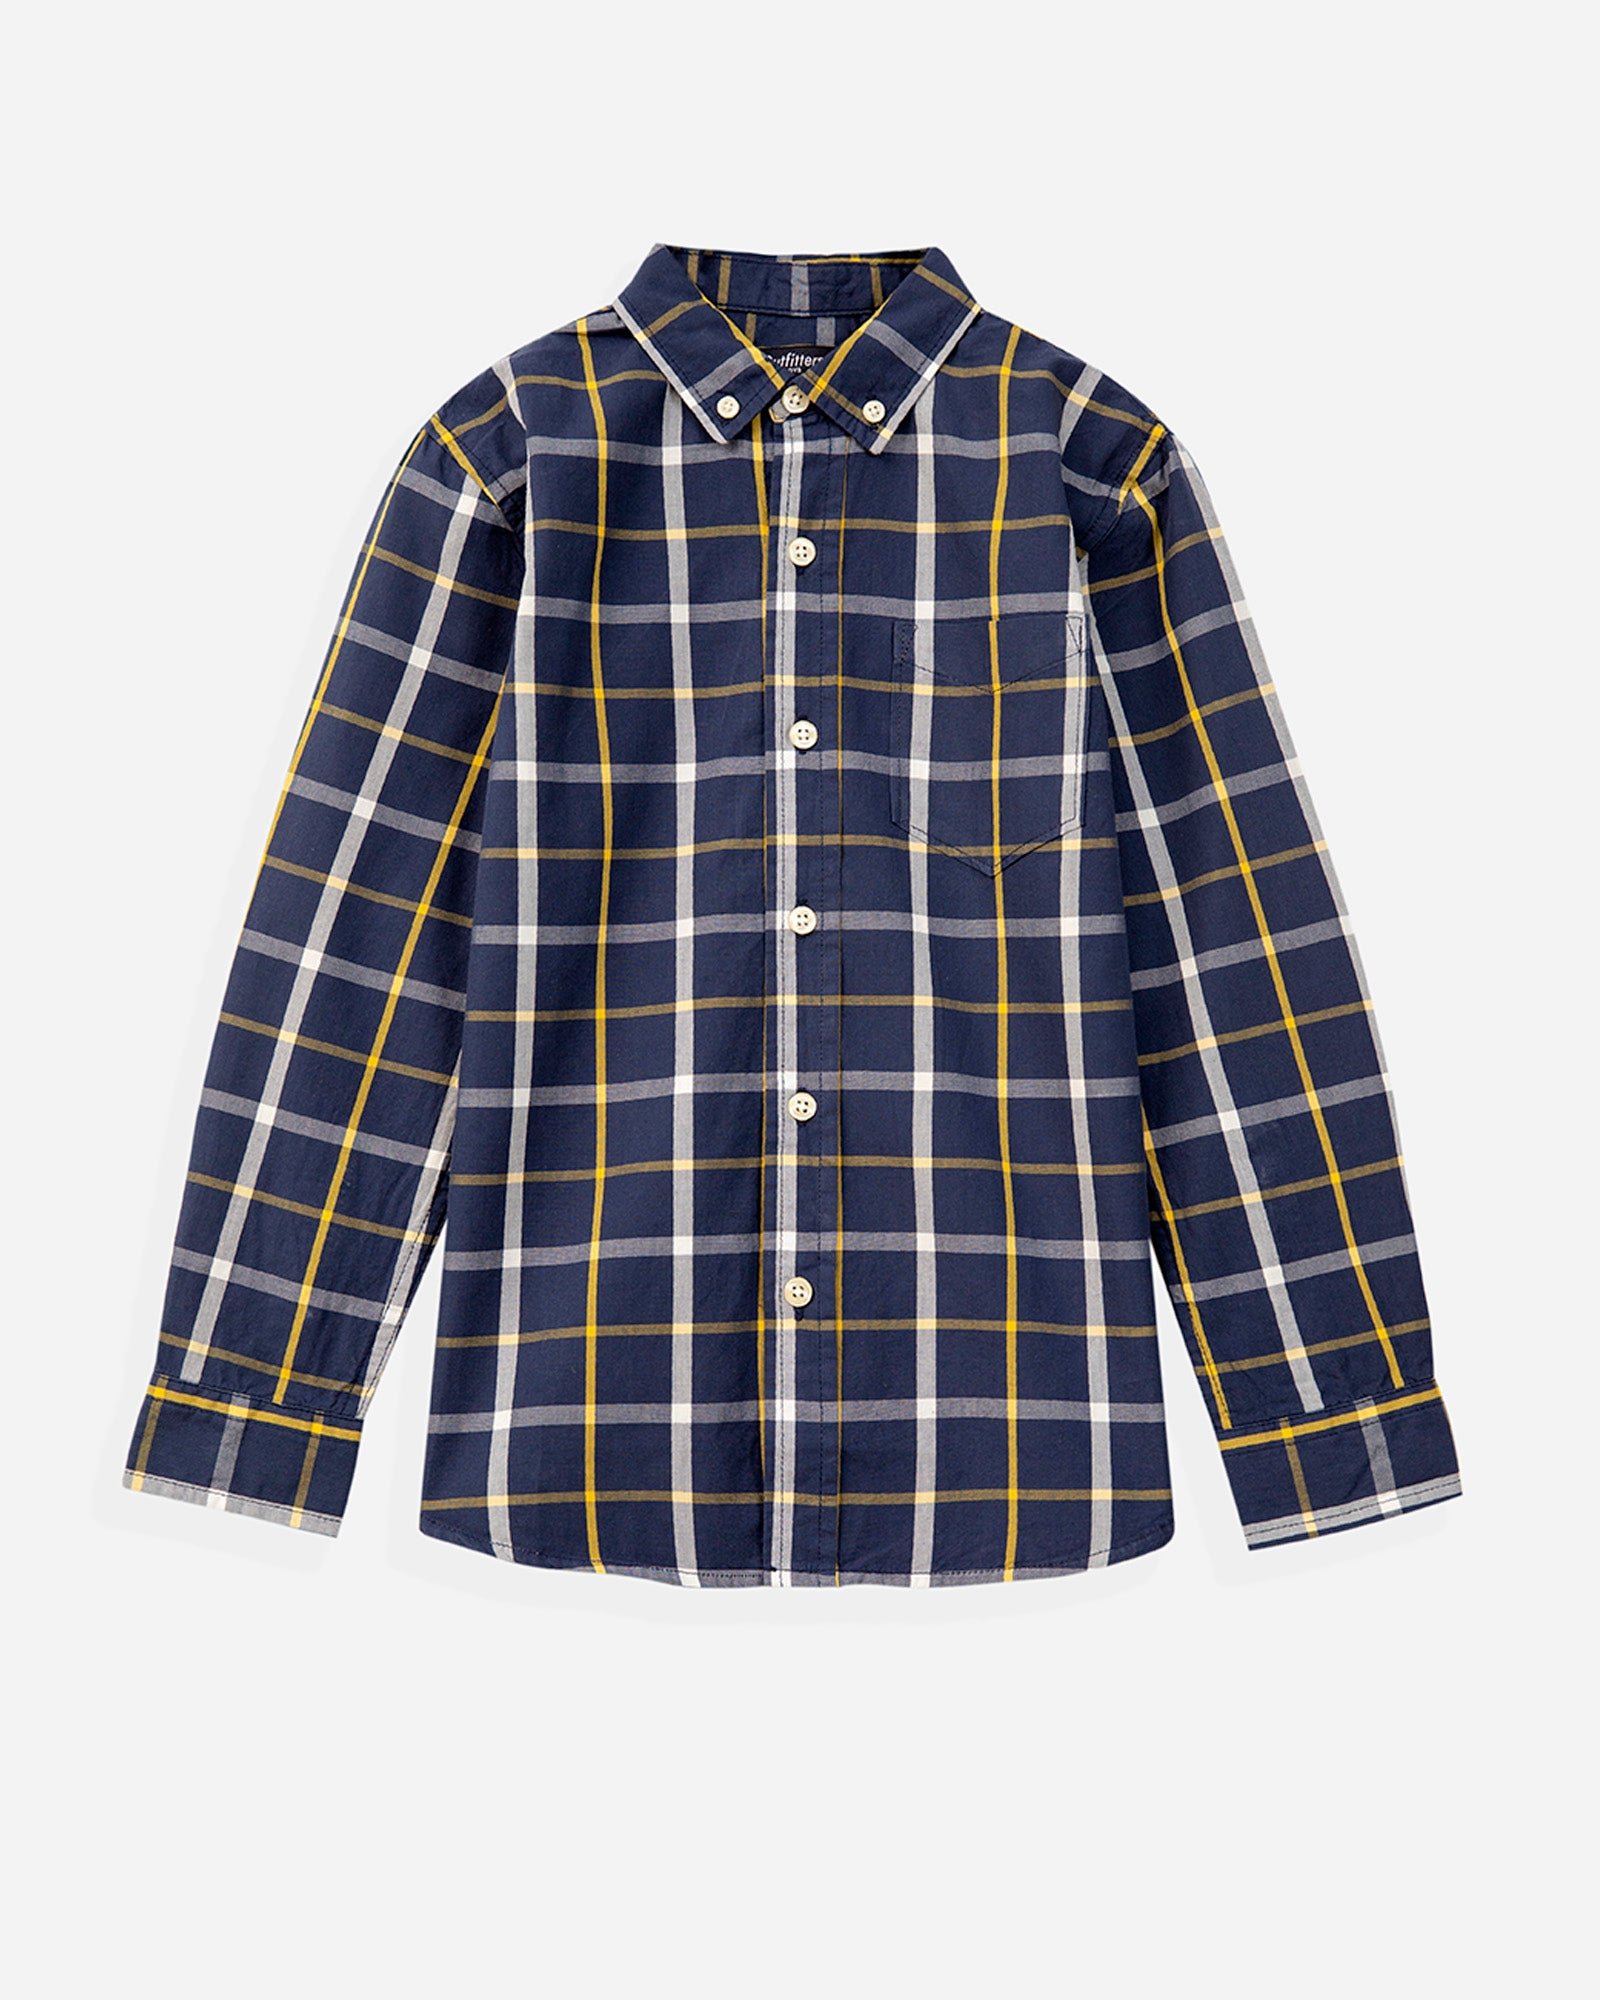 Y/D Checkered Shirt